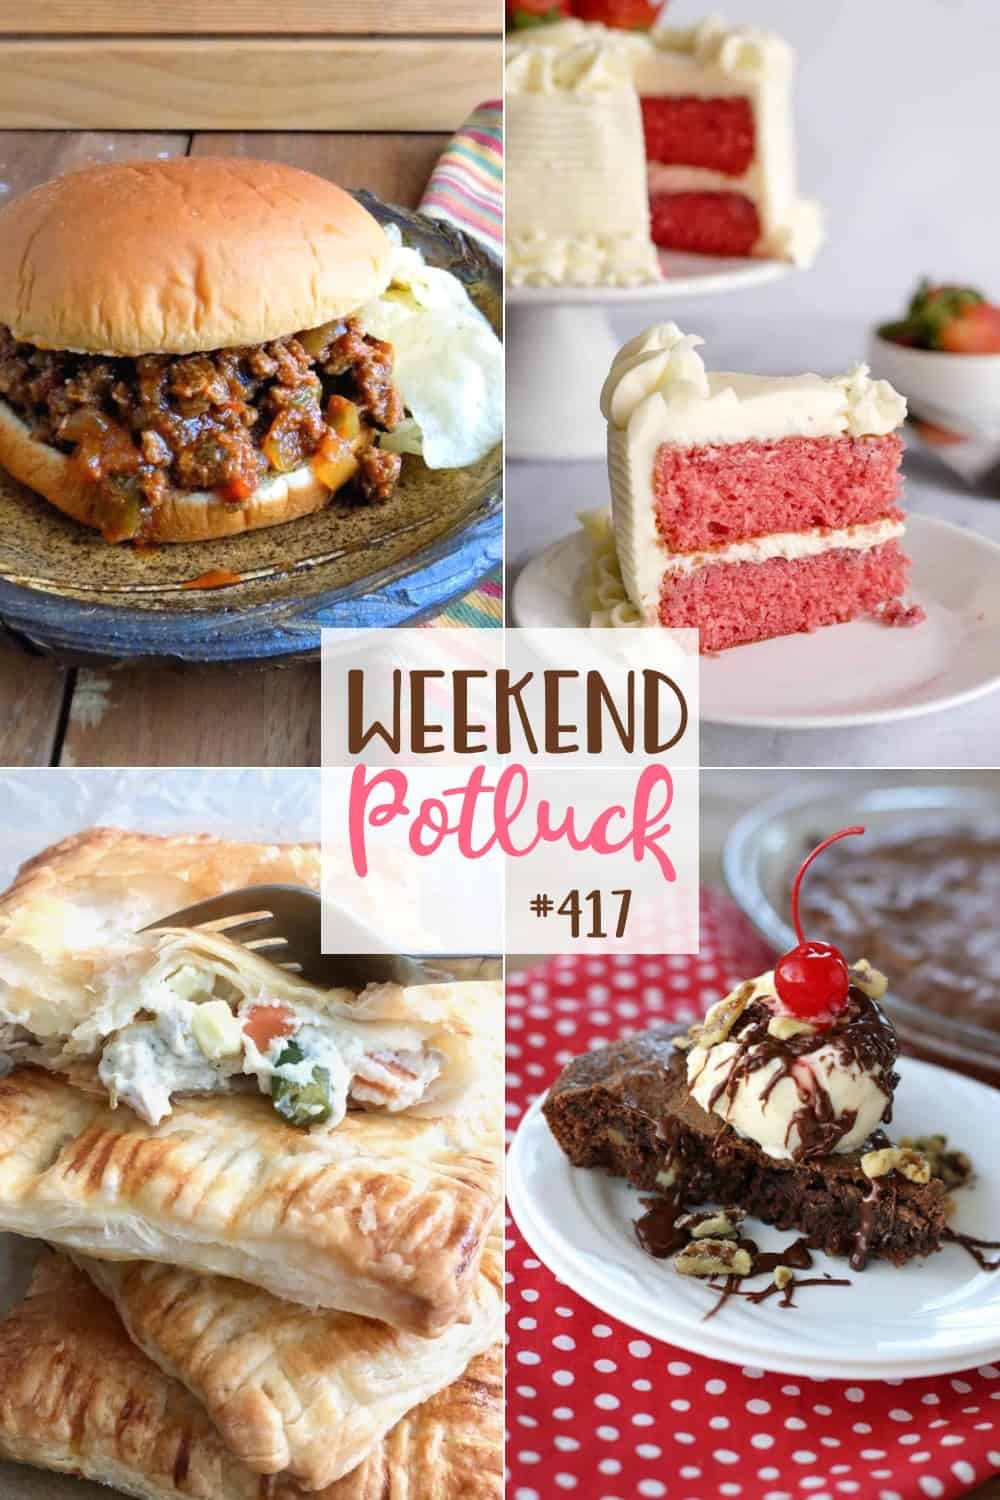 Weekend Potluck featured recipes: Old-Fashioned Sloppy Joes, Fresh Strawberry Cake with Cream Cheese Icing, Chicken Pot Pie Hand Pies, Brownie Sundae Pie